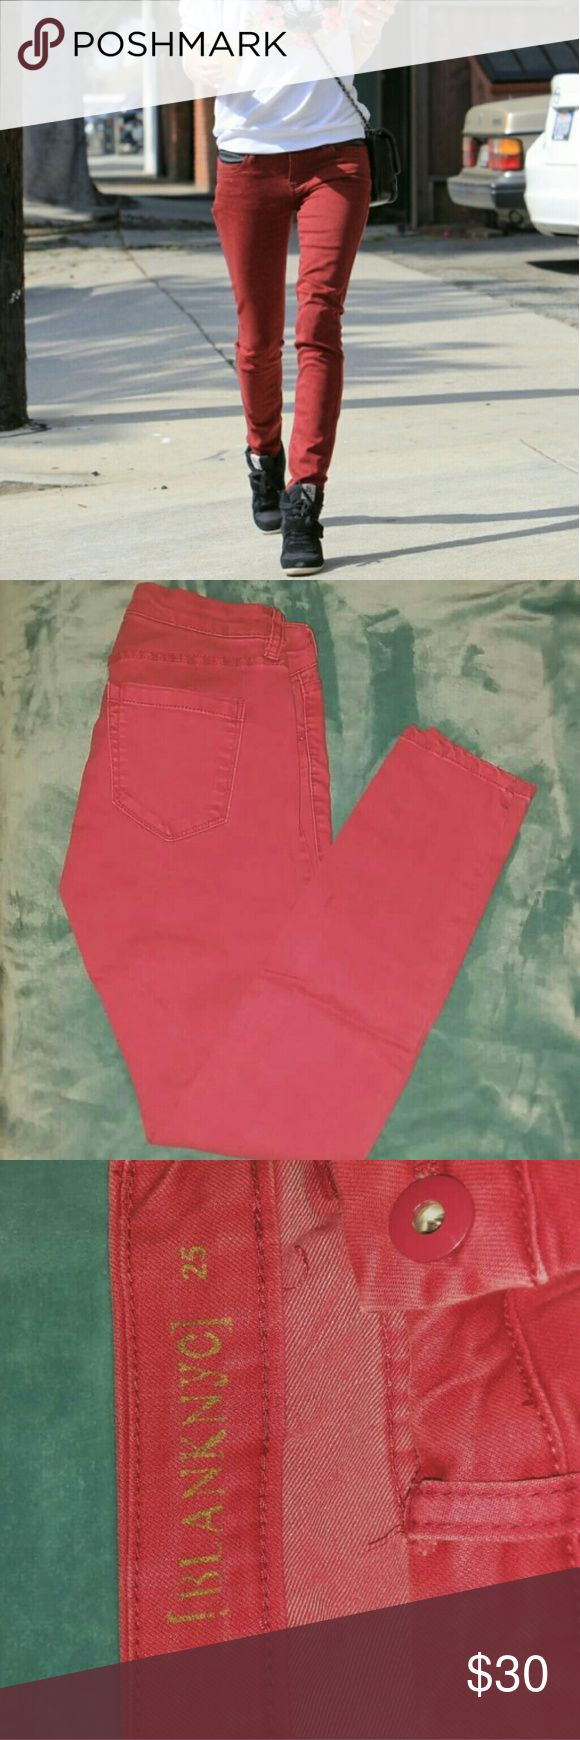 Blank NYC faded red jeans The true color is closest in the covershot. They're definitely not as bright as they seem in the last 2 pictures. They have a faded/washed red look.   Excellent condition, worn once.   ✔send reasonable offers  ❌lowballers will be blocked  ❌DO NOT ASK ME TO TRADE   ❤ Check out my closet for anything else you might like to save on a bundle!  🛍 Add any item(s) to your bundle to receive a personal discount! Blank NYC Jeans